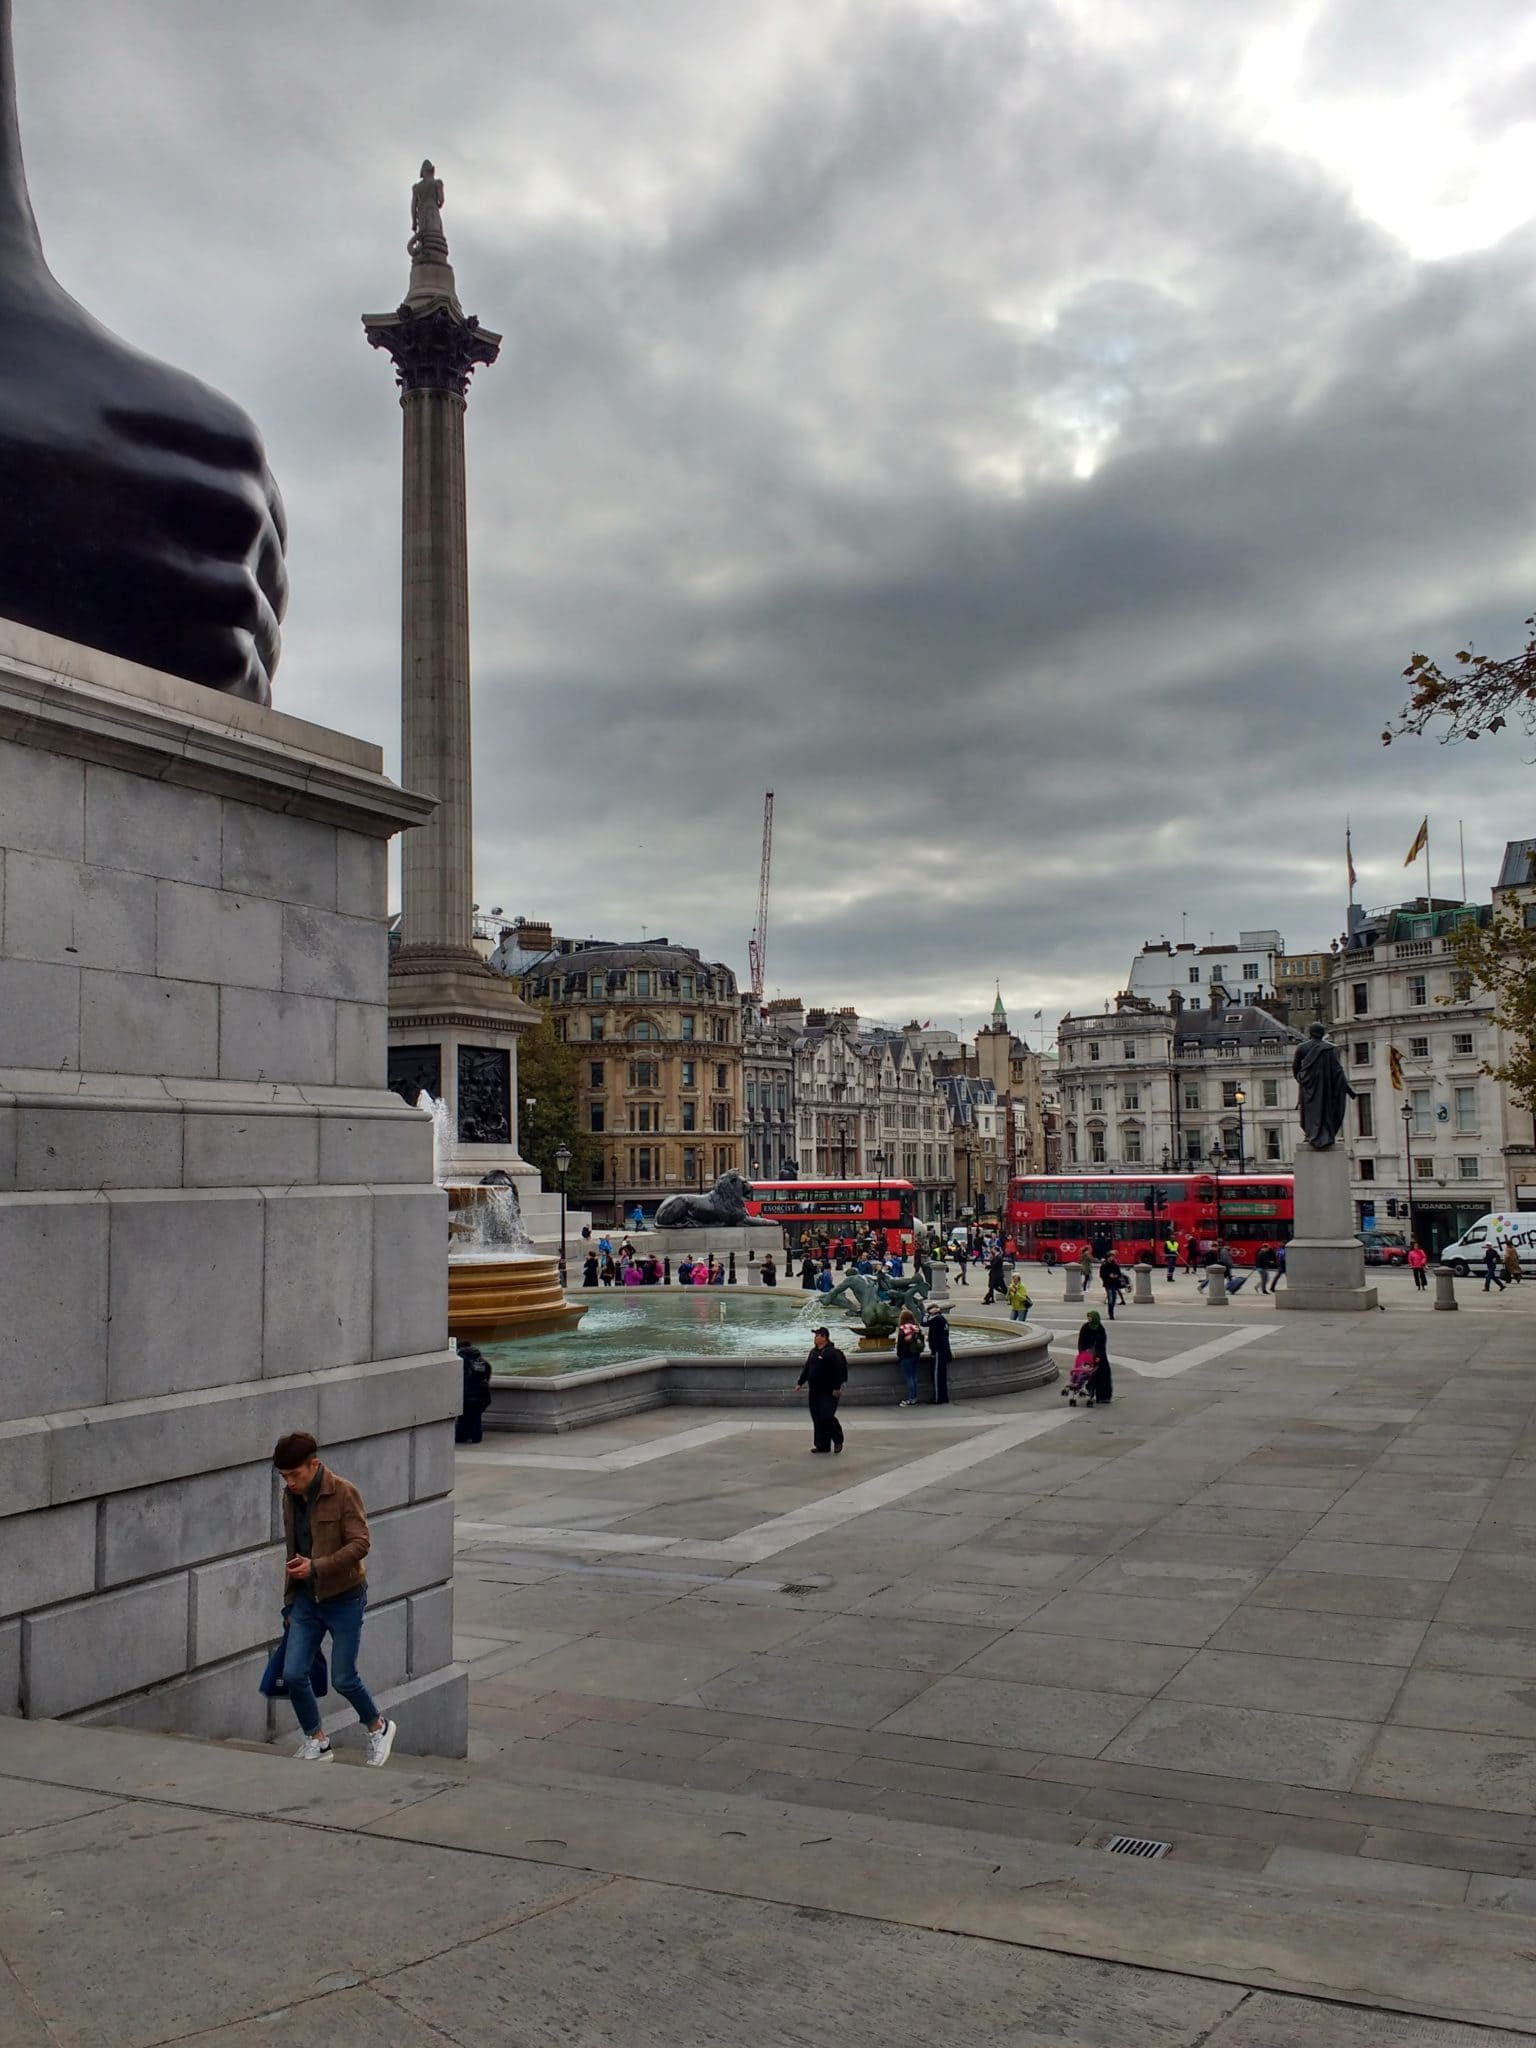 Iconic Trafalgar Square lions and some fascinating facts